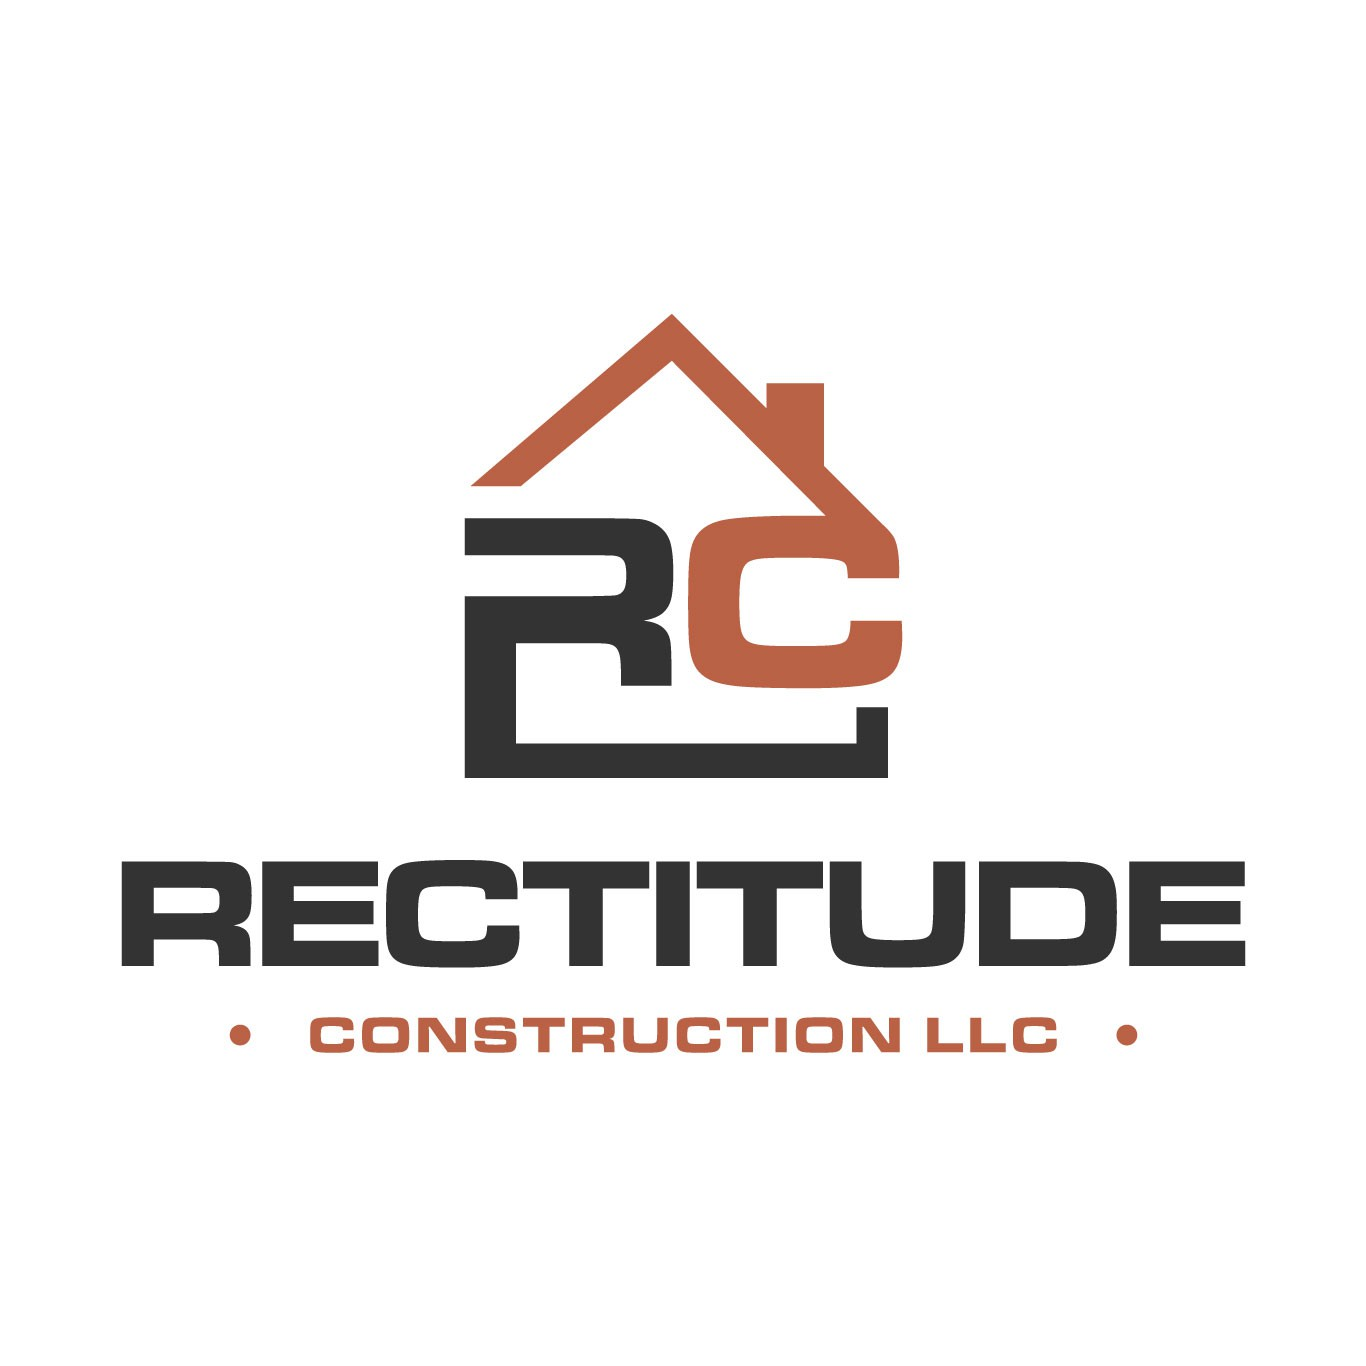 Create a rustic/vintage logo for a construction company